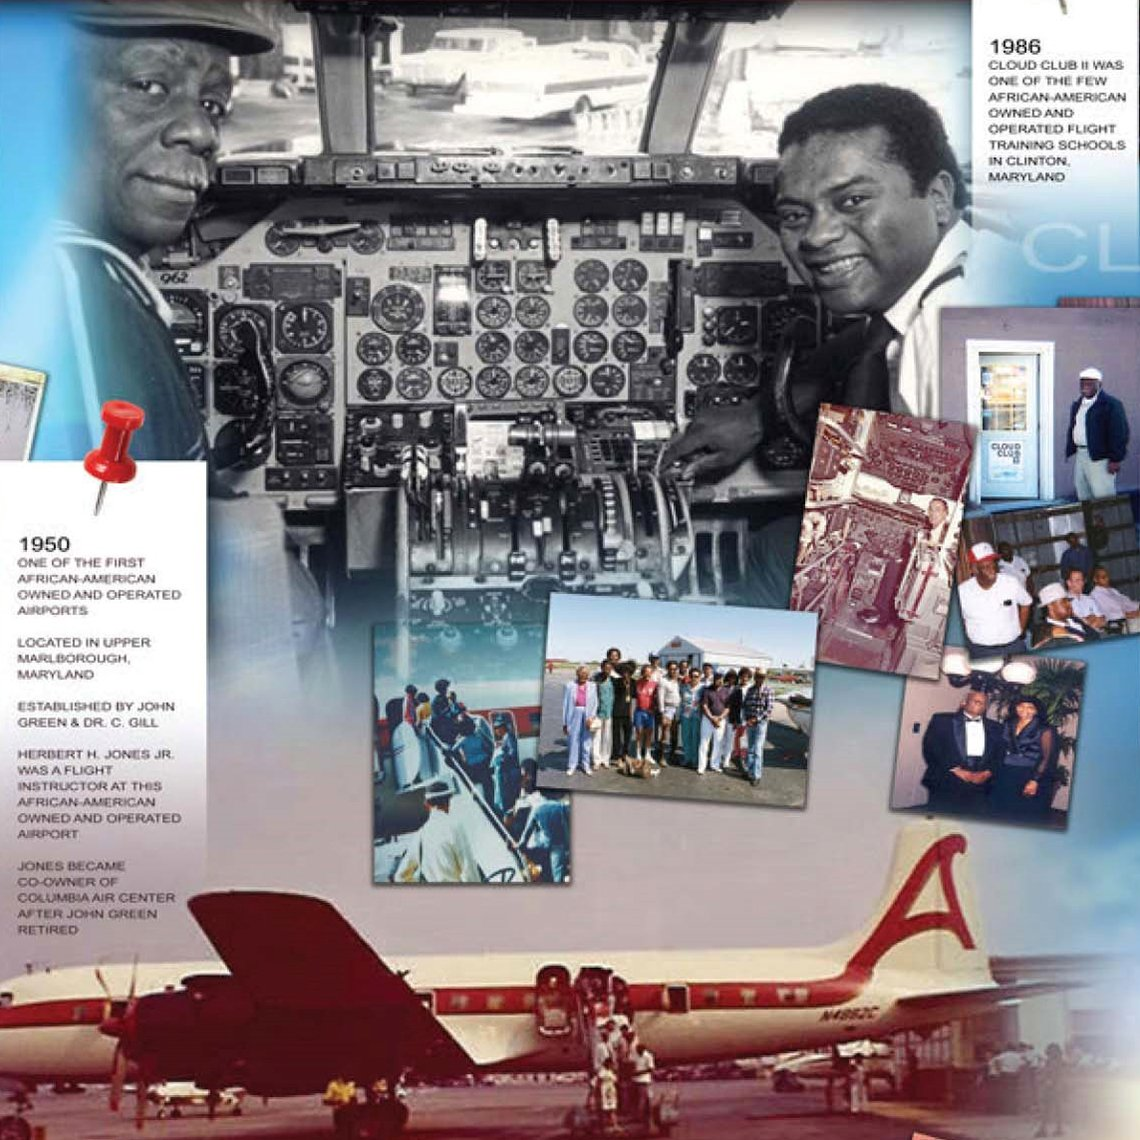 an exhibit about herbert jones and his contributions to aviation